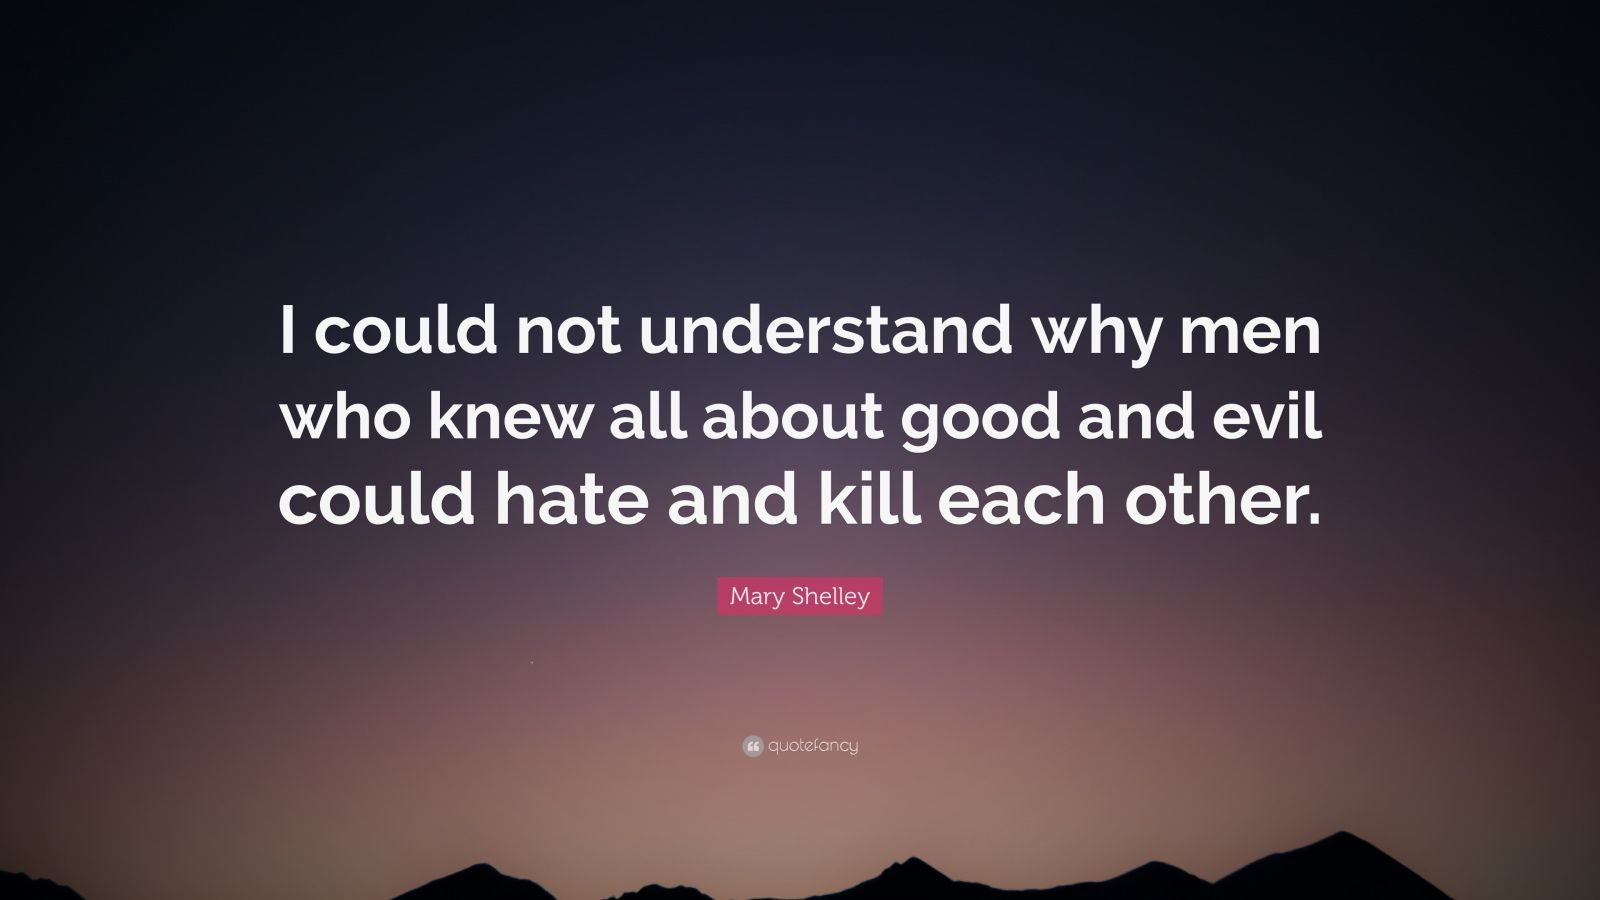 """Mary Shelley Quote: """"I could not understand why men who knew all about good and evil could hate and kill each other."""""""